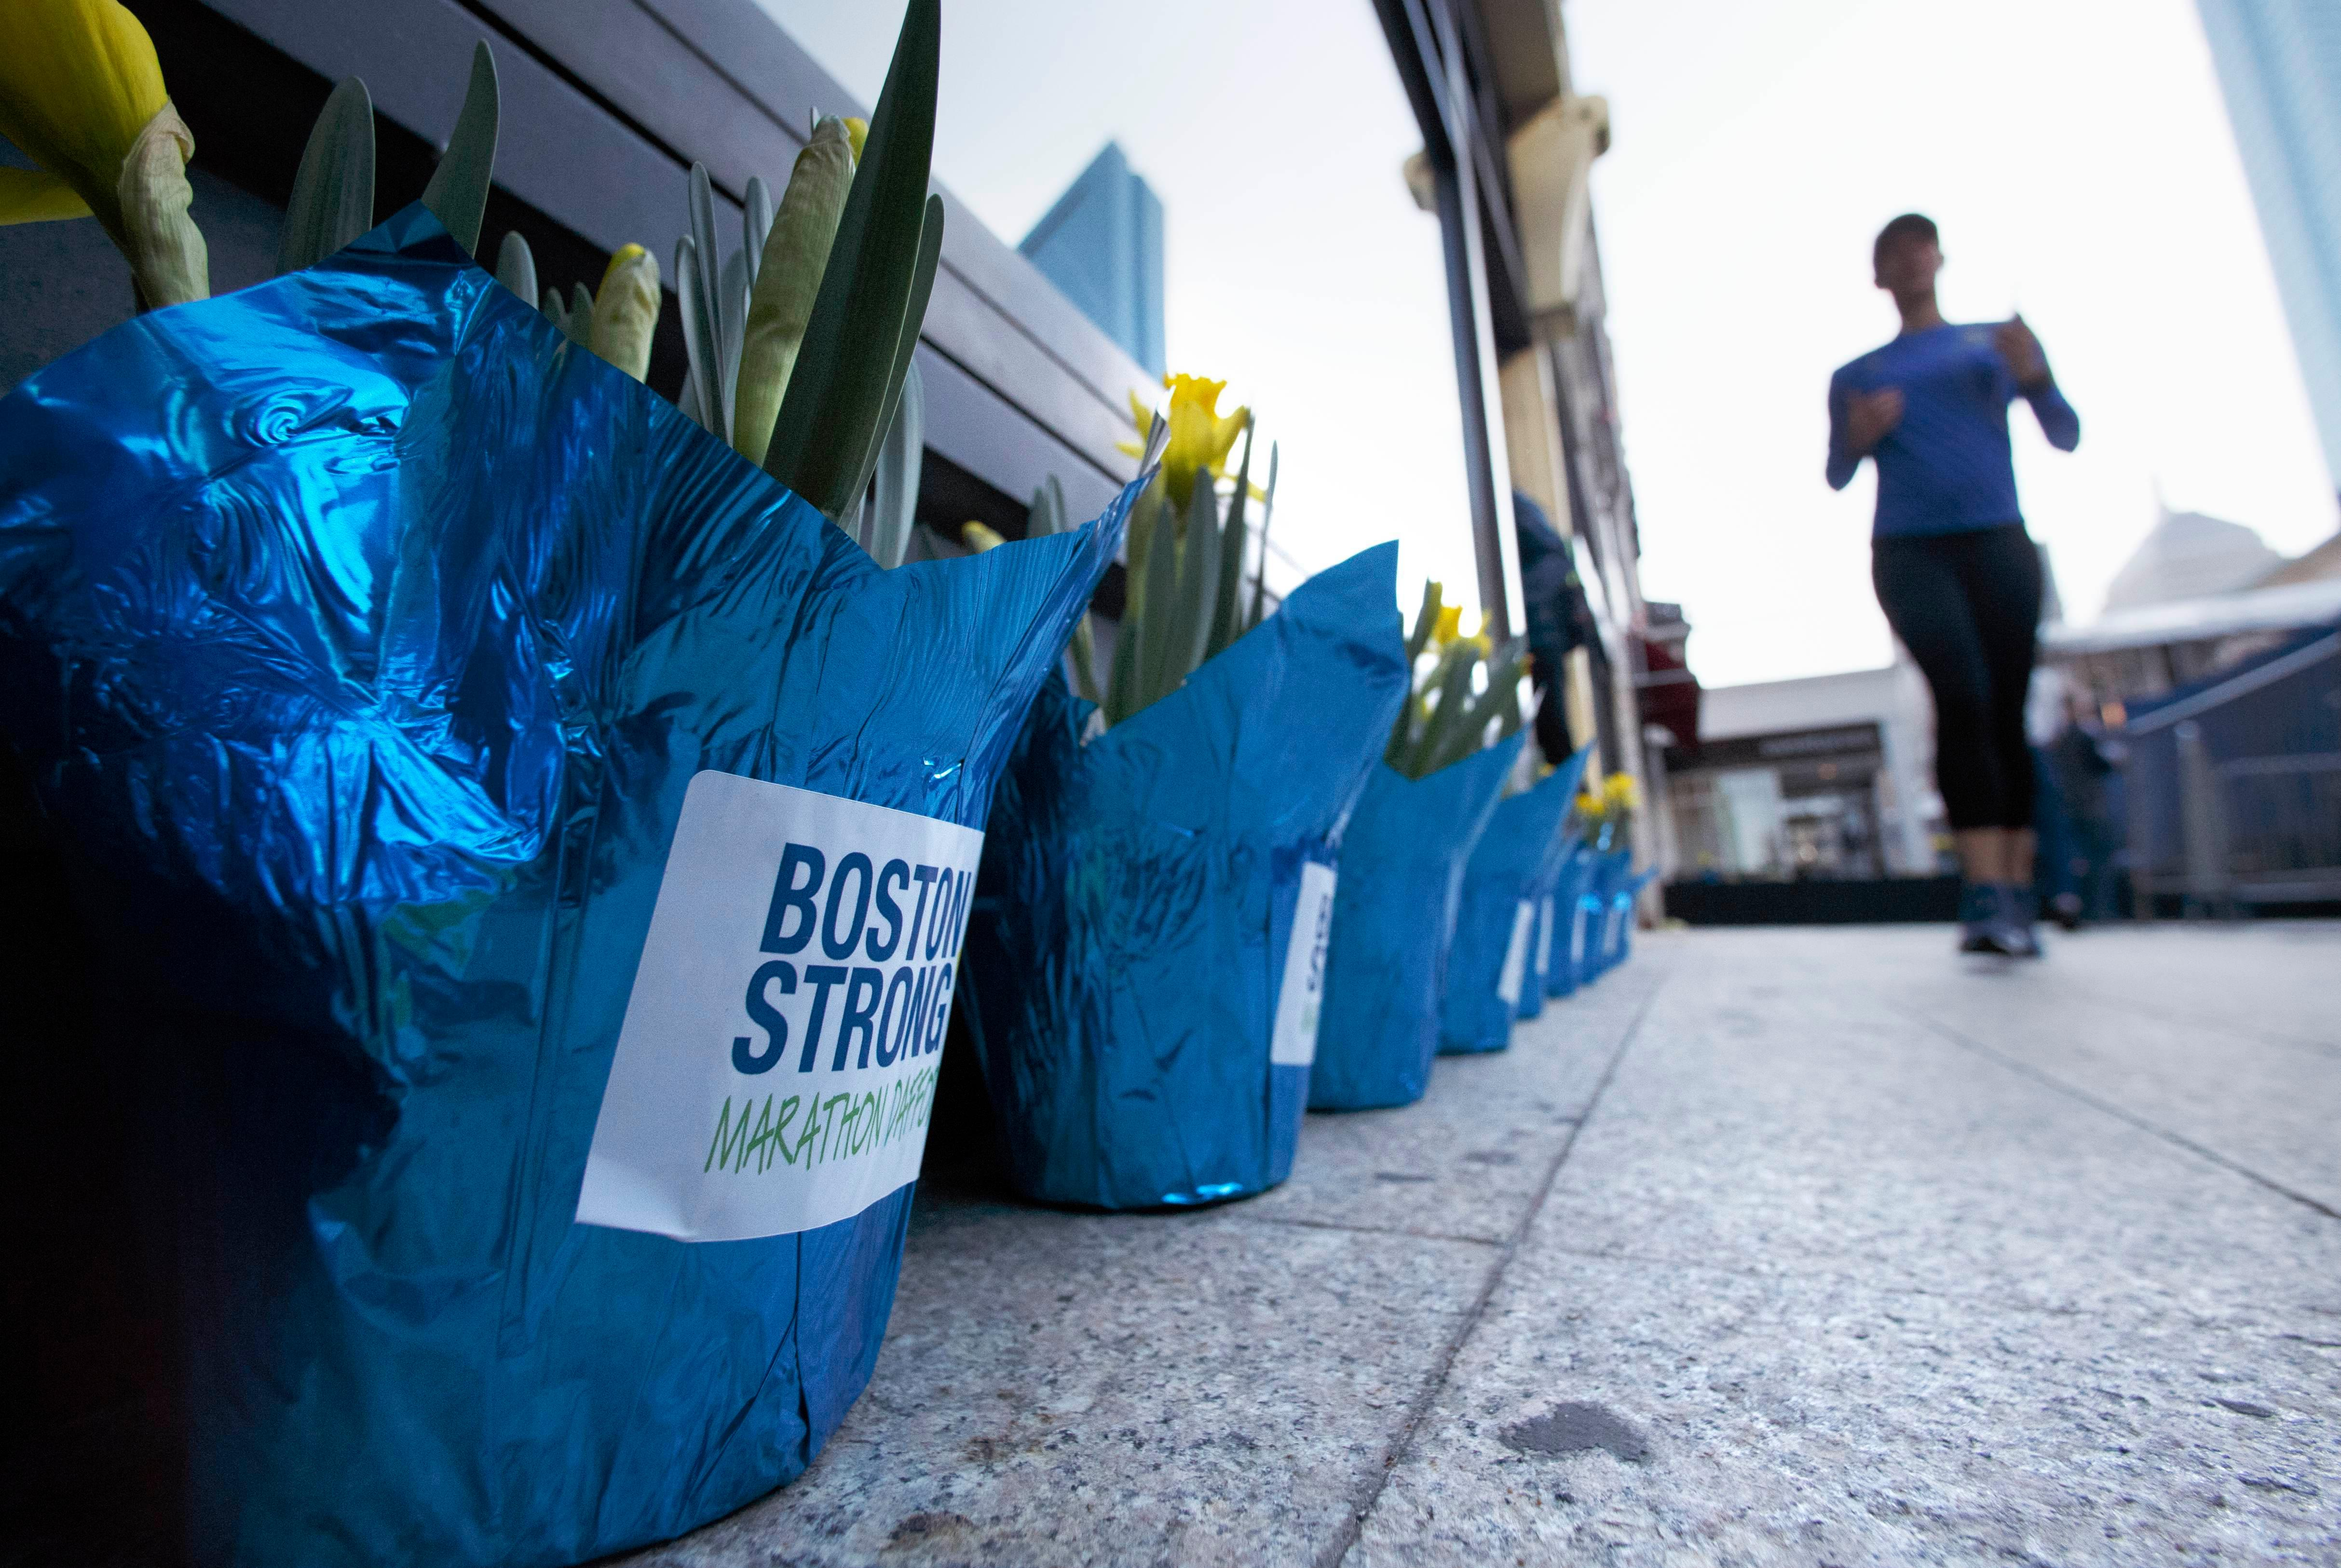 A runner passes flowers placed at the site of the bombing at the Boston Marathon finish line, Saturday, April 15, 2017, in Boston.  Bostonians are marking the fourth anniversary of the deadly 2013 Boston Marathon attacks. (AP Photo/Michael Dwyer)